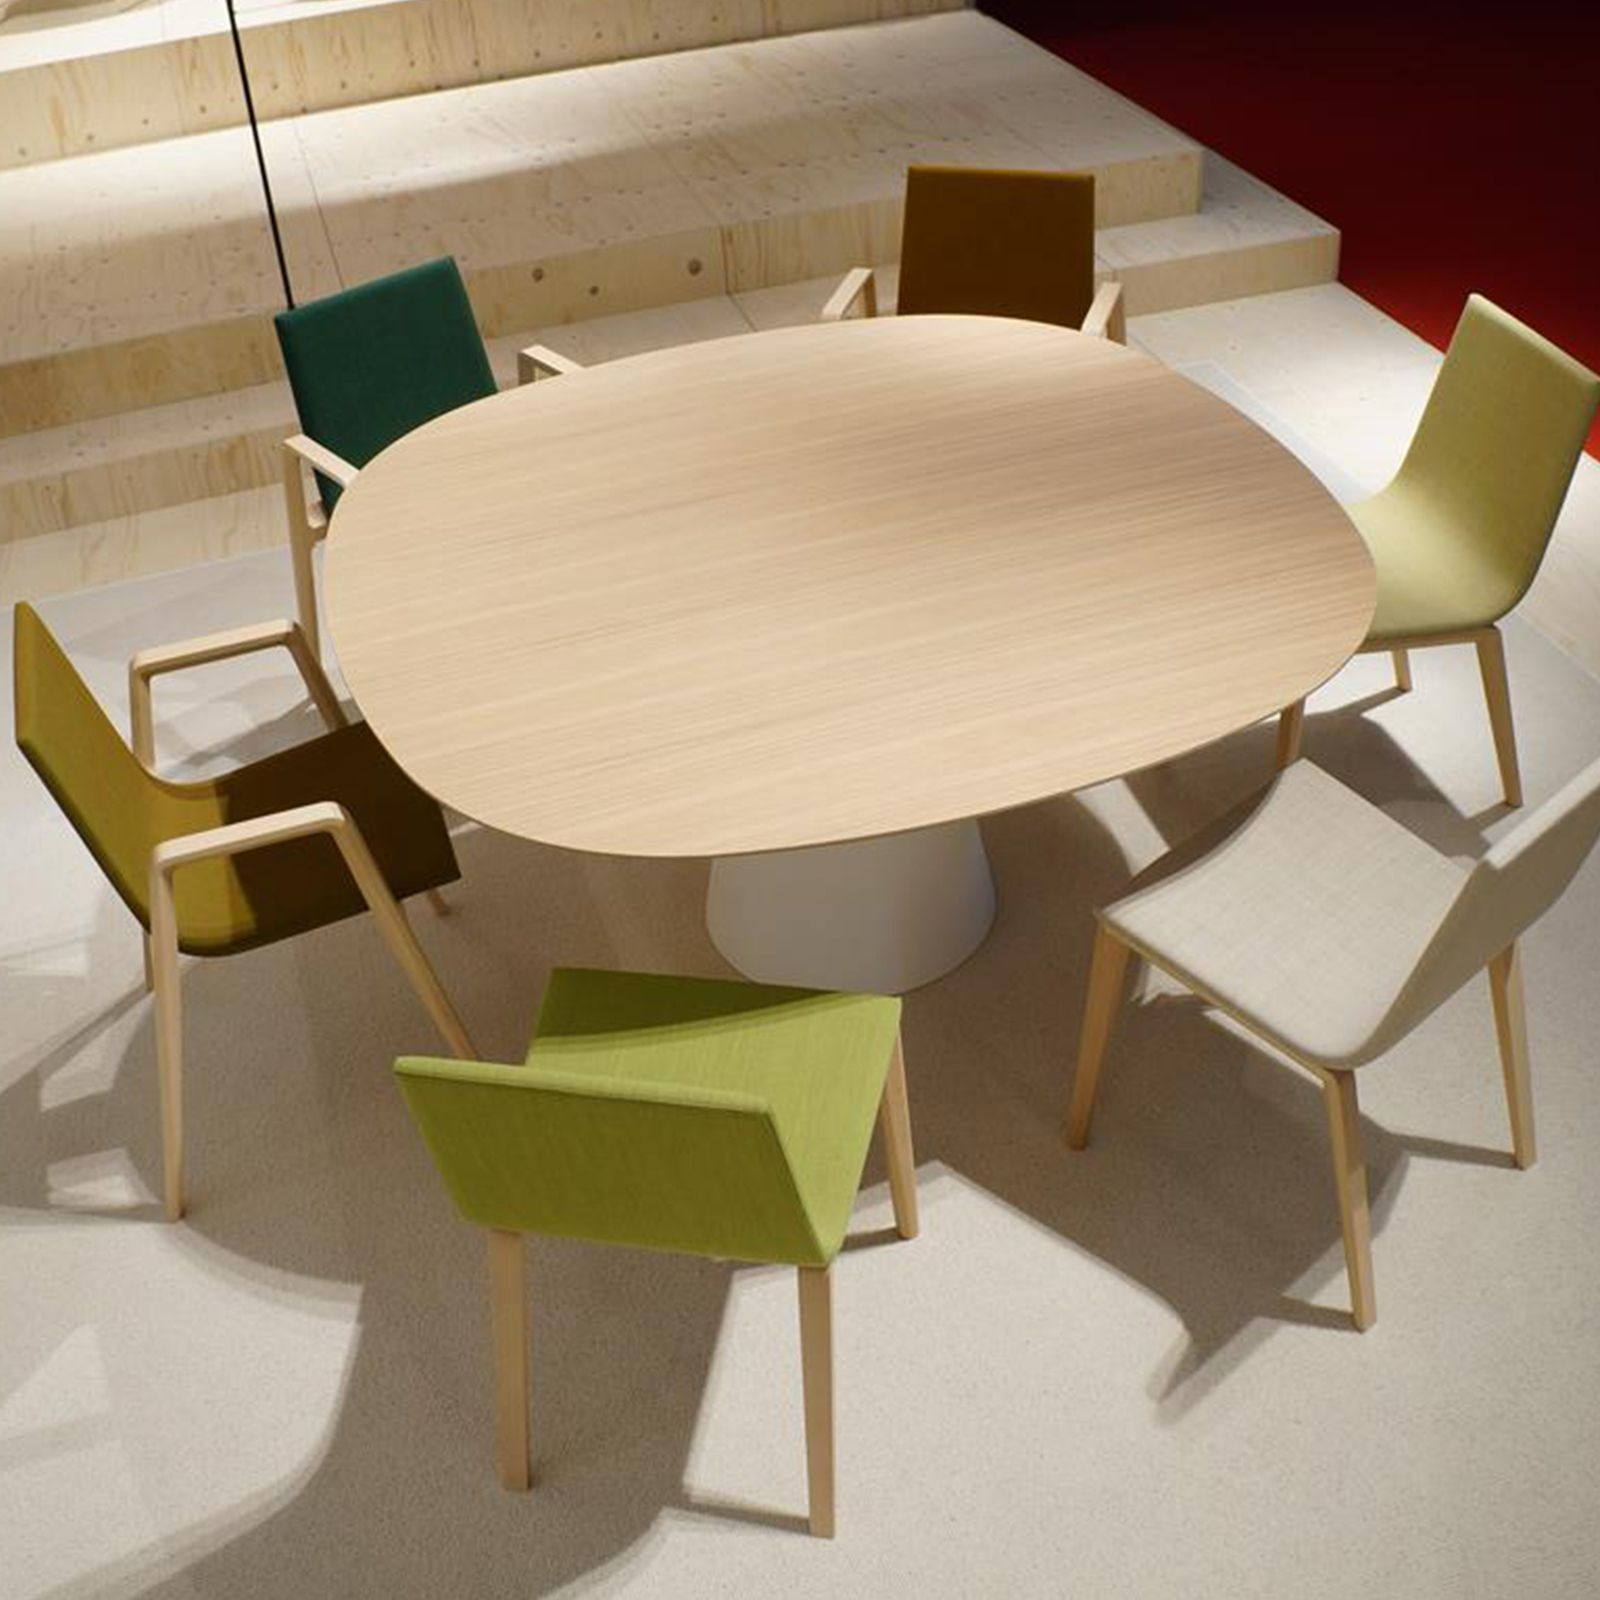 REVERSE CONFERENCE TABLE